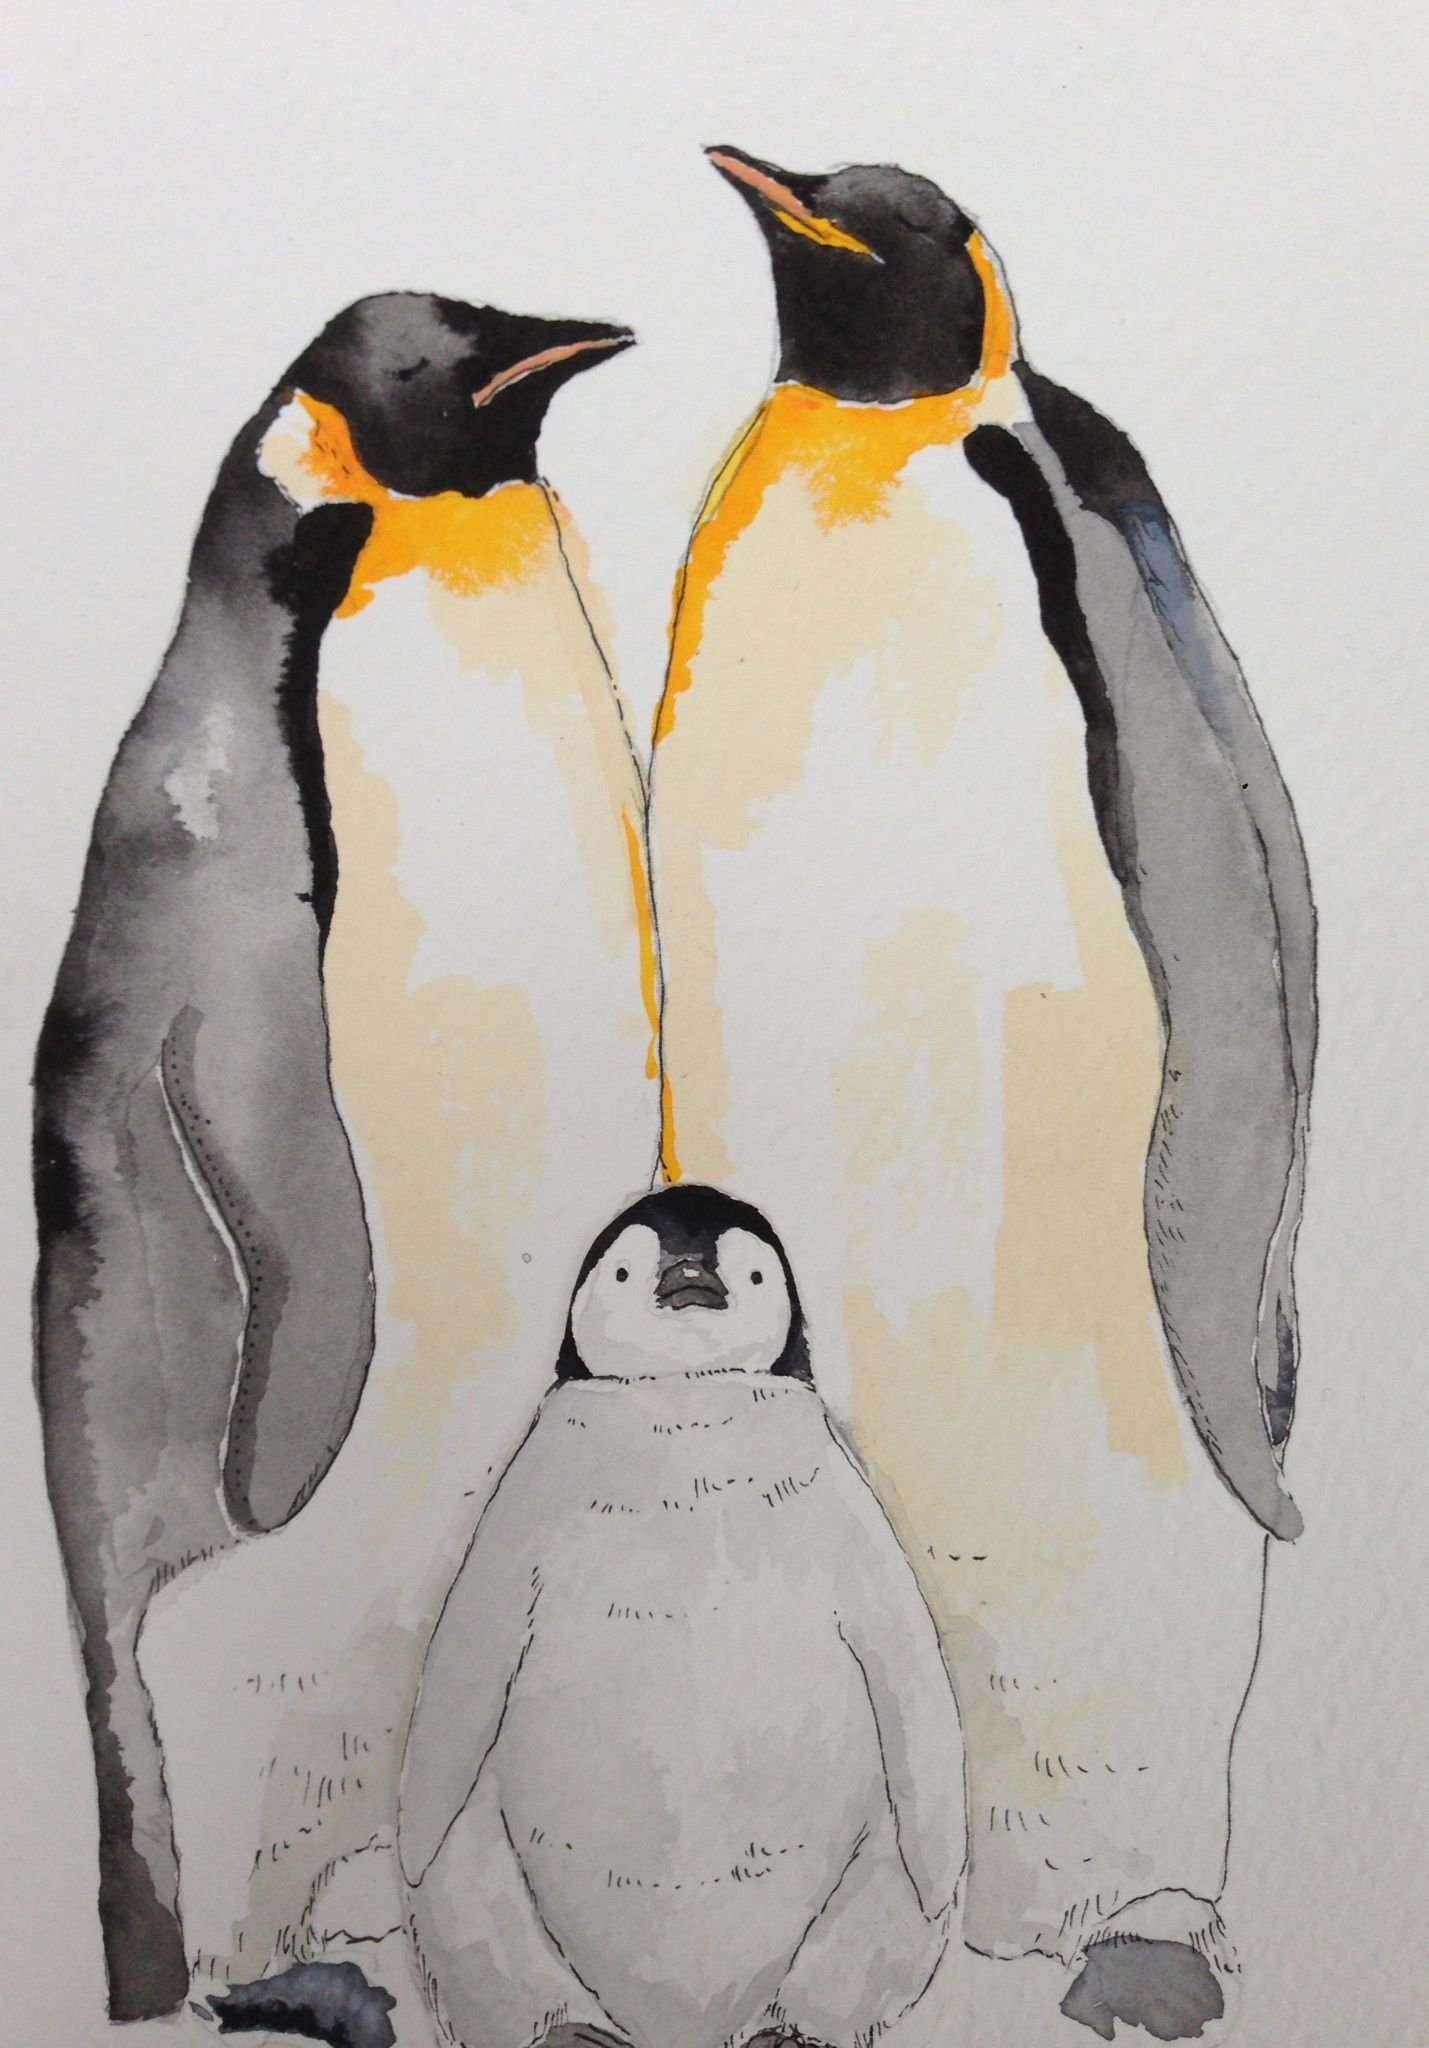 Penguins With Images Penguin Watercolor Penguin Illustration